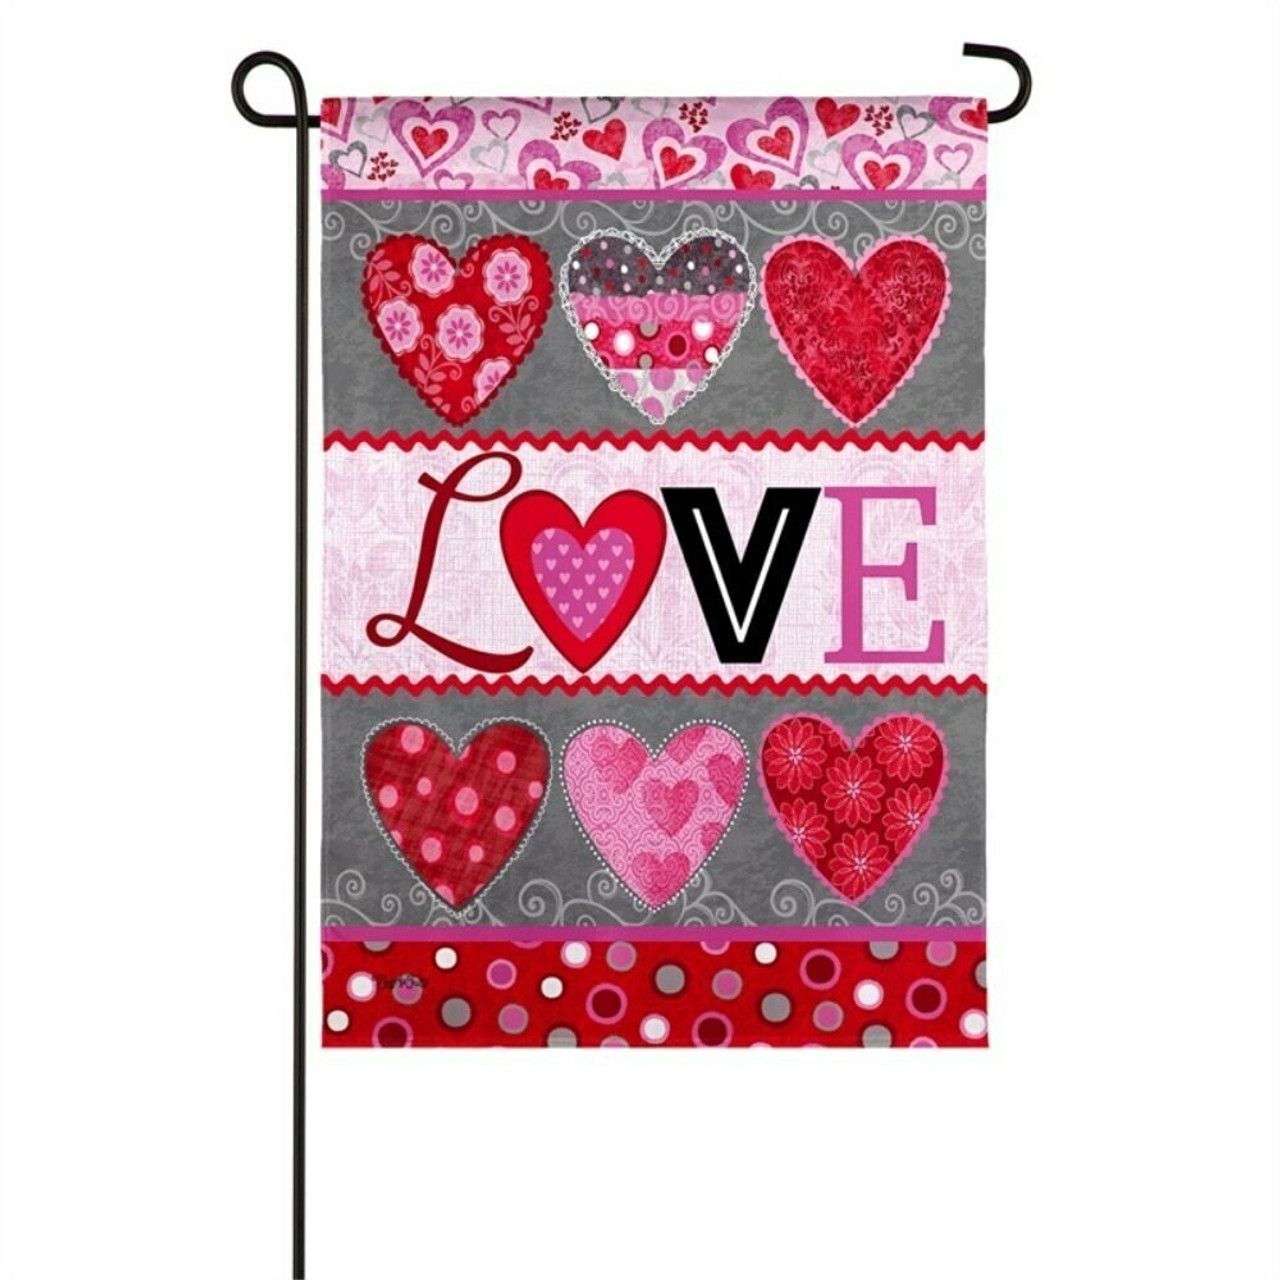 "The garden flag is separated in to five sections. The first section, at the top, has a light pink background with hearts of different sizes in dark pink, red, light gray, and dark gray throughout. The second section has a dark gray background with 3 large hearts in a row. The first heart is red with pink flowers, the second heart is collage of different patterns, and the third heart is red with a damask design. The third section has a light pink background with the word ""LOVE"" written in different fonts for each letter. The L is a dark red script, the O is a red and pink heart, the V is a black block letter, and the E is pink in a Serif font. The fourth section is the same at the second with 3 hearts in a row. The last section has a red background with polka-dots that are white, pink, gray, and dark pink."